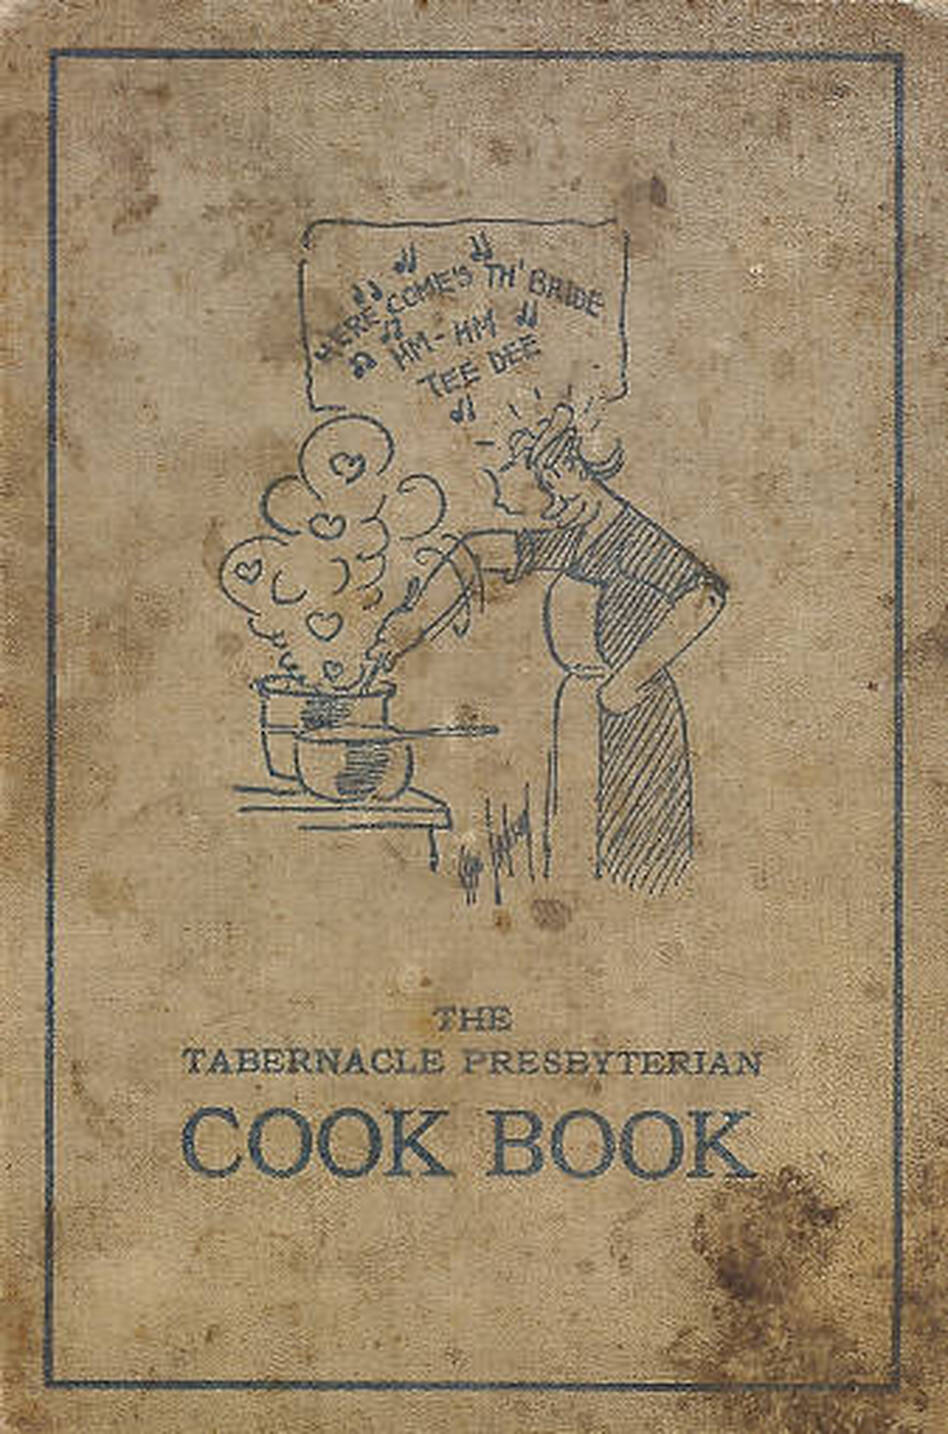 The Tabernacle Presbyterian Cook Book. A church cookbook published in 1922 from recipes compiled by the Tabernacle Auxiliary in Indianapolis, Indiana. (IUPUI University Libraries)